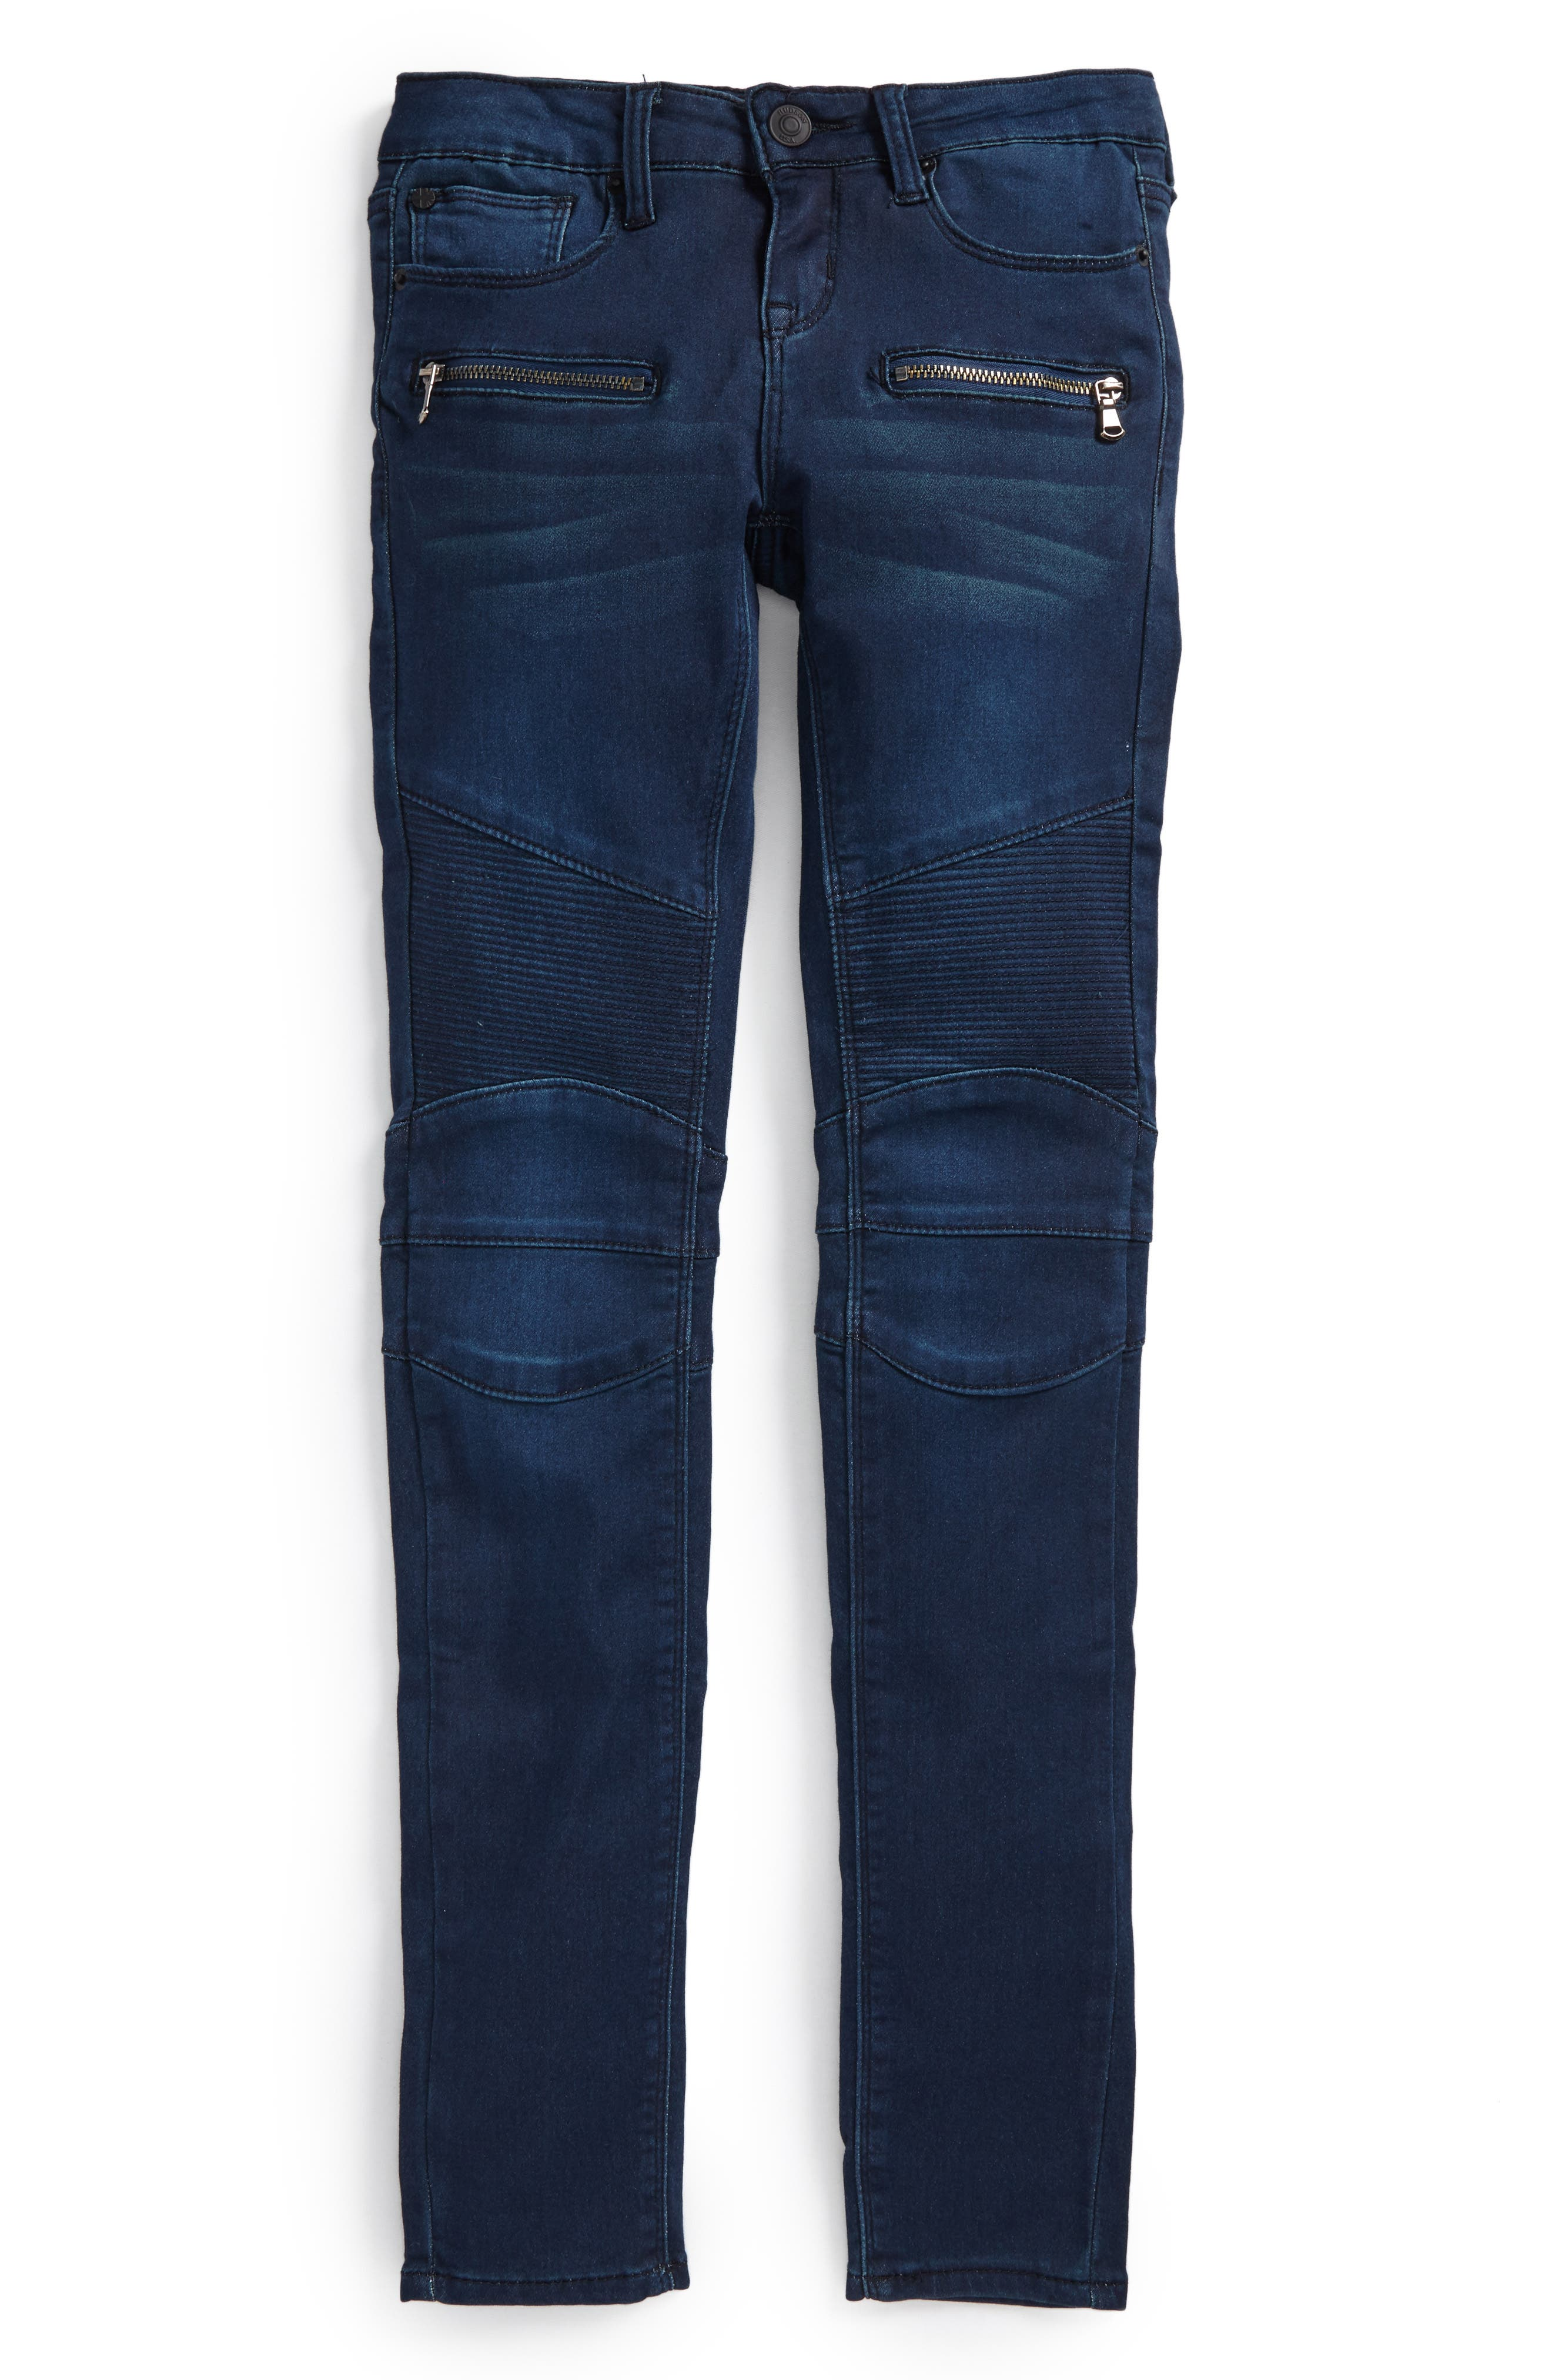 French Terry Moto Jeans,                             Main thumbnail 1, color,                             376